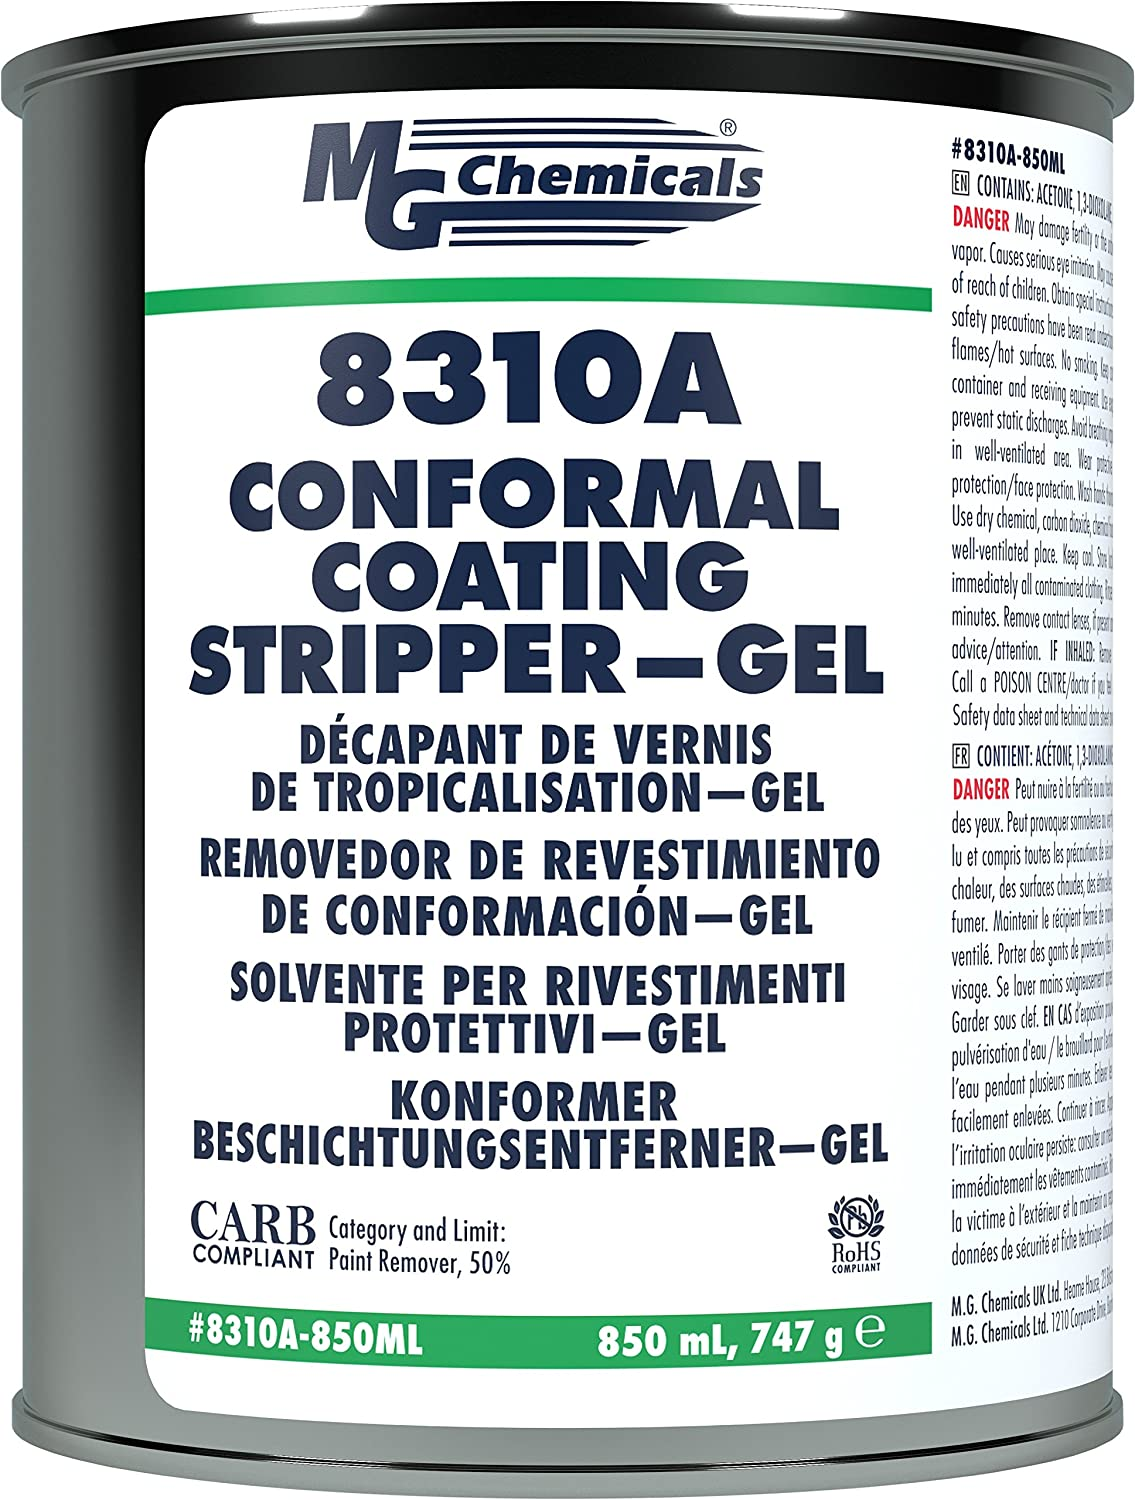 MG sold out Chemicals 8310A San Francisco Mall Conformal Coating Stripper Typ Drip - Gel Non